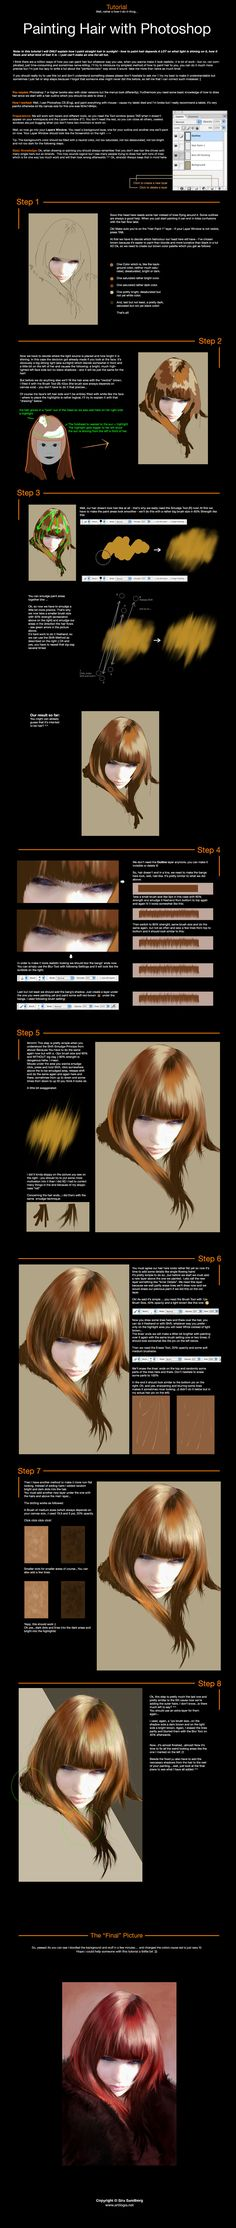 Photoshop___Painting_Hair_by_sirasan.jpg (900×8500) via PinCG.com